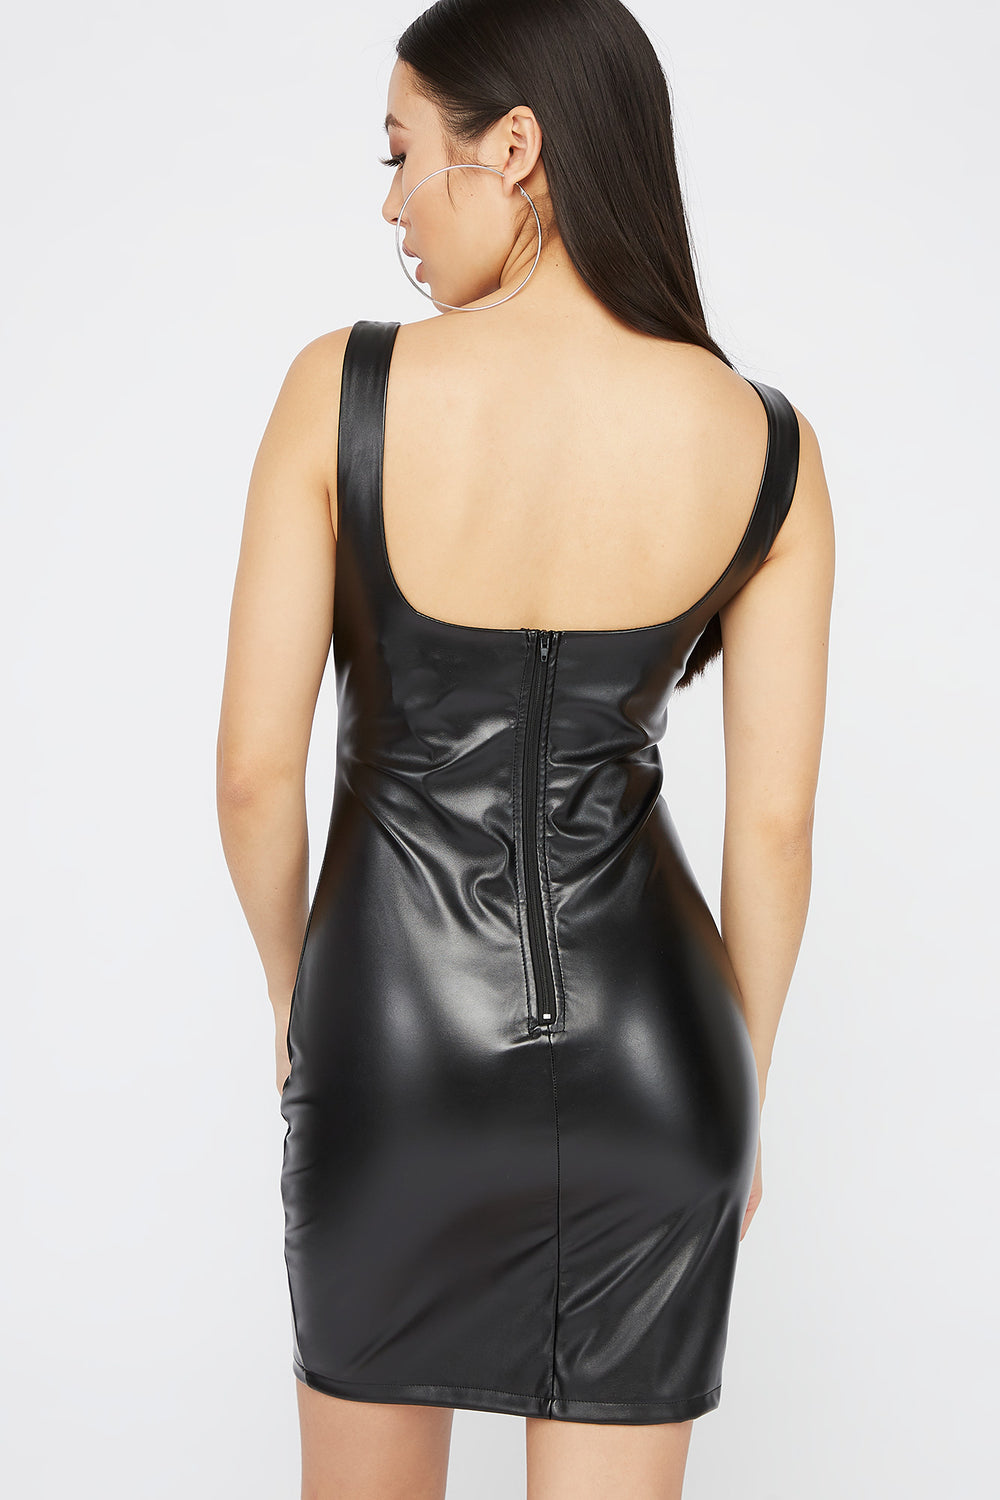 Faux-Leather Scoop Neck Mini Dress Black